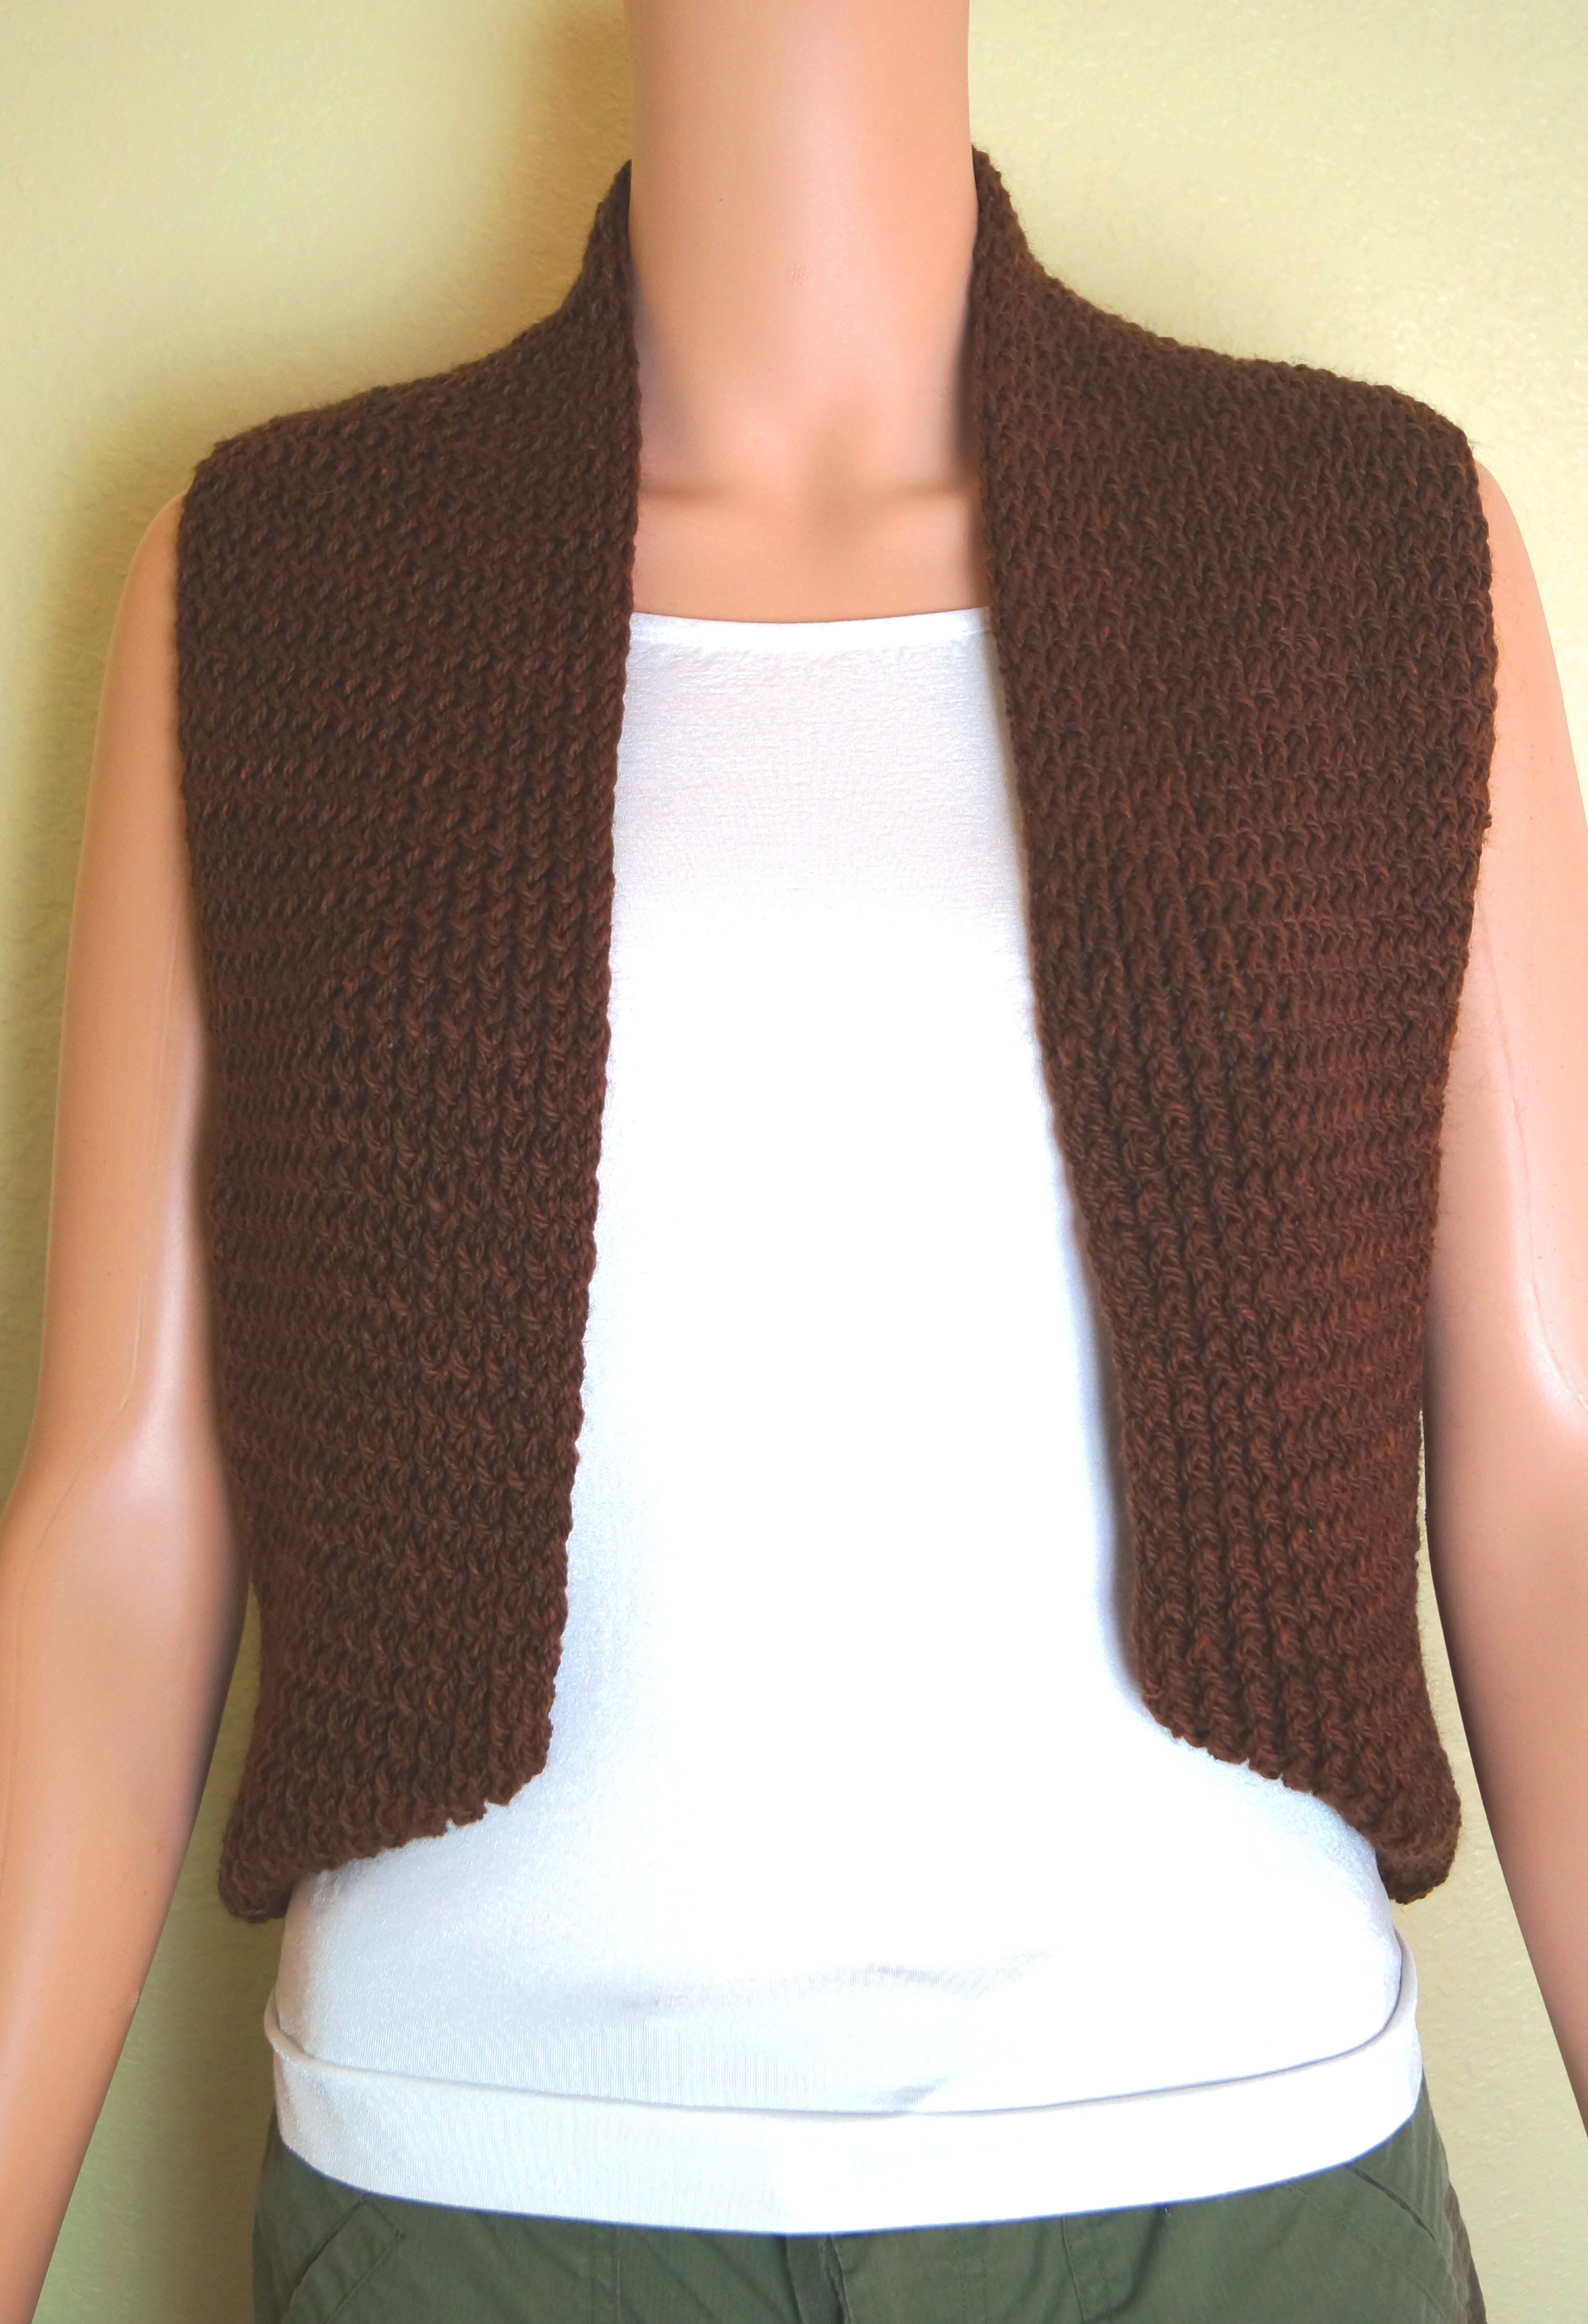 Loom Knit Vest Pattern : Loom Knit Infinity Vest Its A Family Affair Designs ...